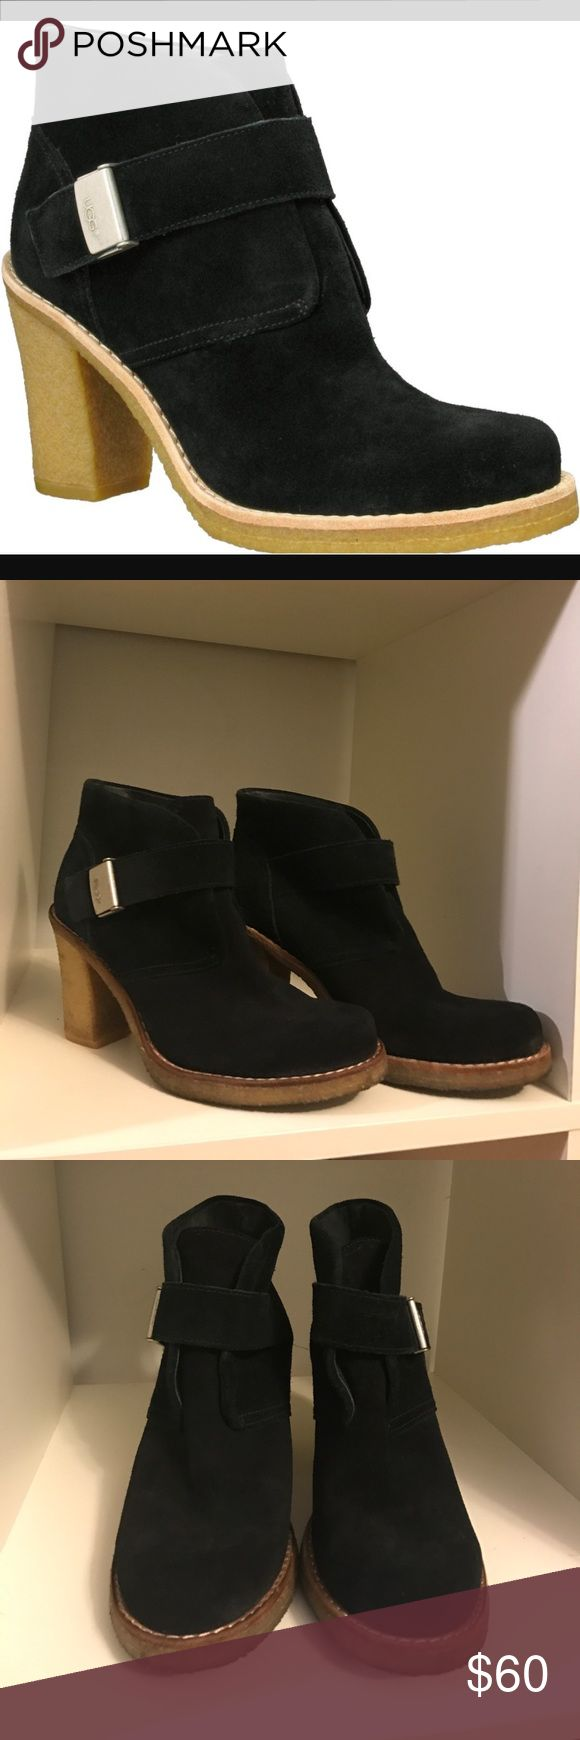 Ugg 'Brienne' black suede platform ankle boots Ugg 'Brienne' black suede platform ankle boots. In excellent used condition! No flaws. Only some dirt on the rubber soles. Suede has no wear. These are hard to find and super comfy and cute!!! UGG Shoes Ankle Boots & Booties